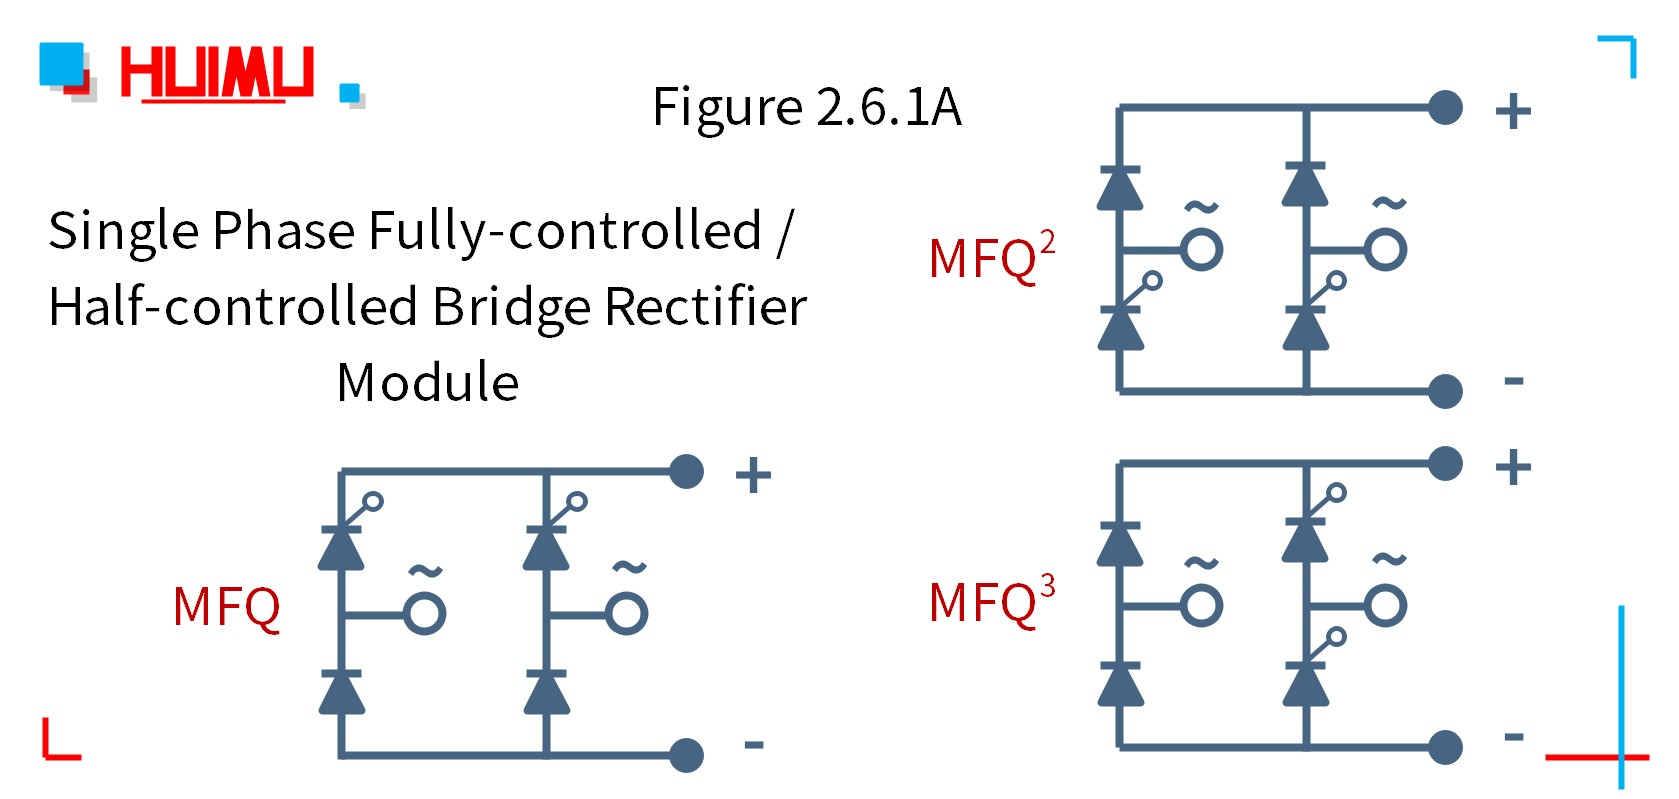 MGR_mager_MFQ_seriese_single_phase_fully-controlled_/_half-controlled_bridge_rectifier_module_citcuit_wiring_diagram